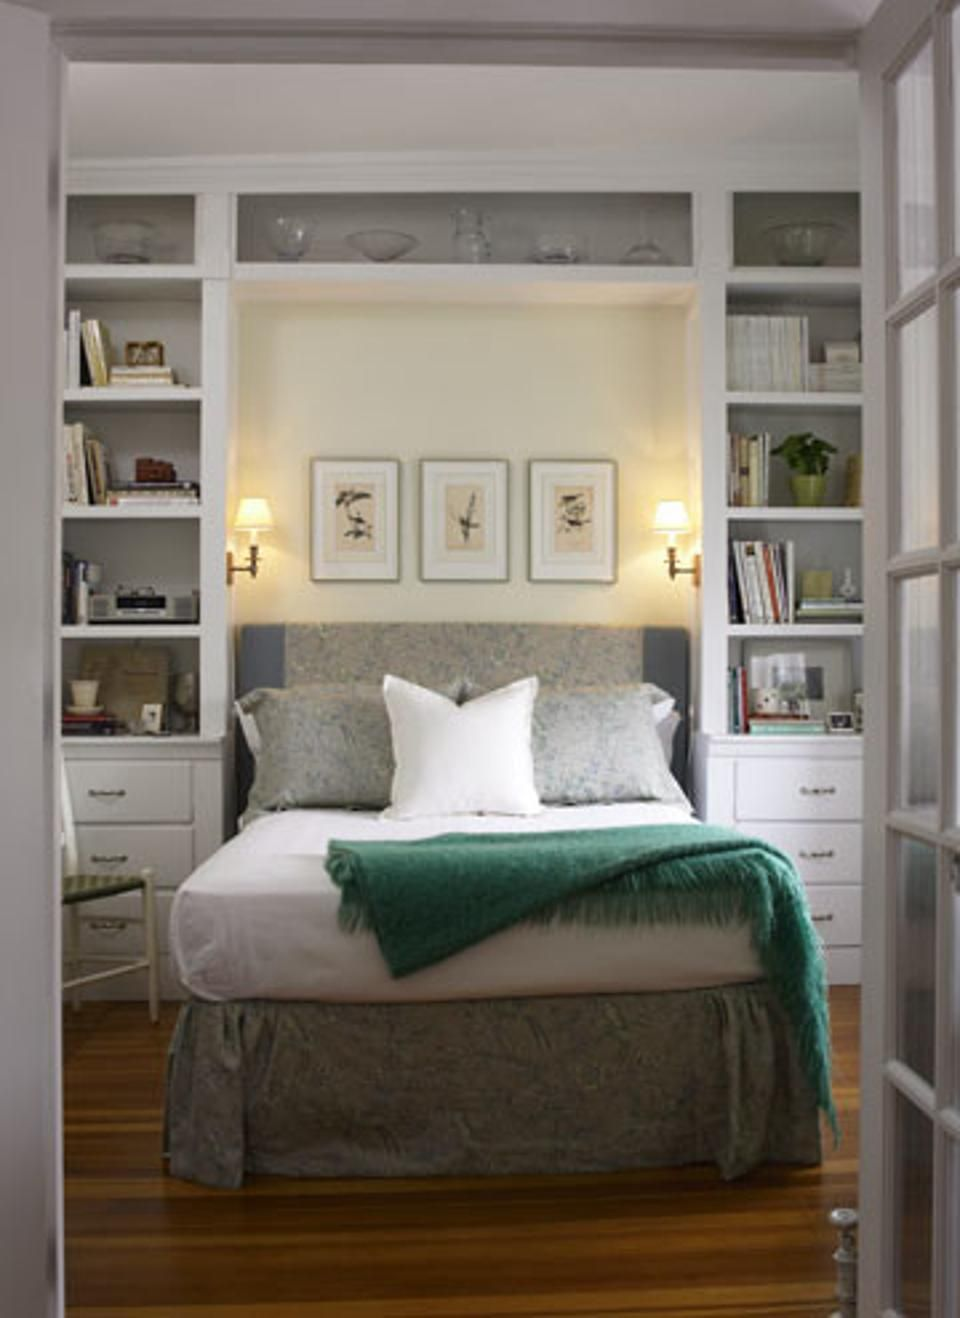 turn a compact space into a brilliant boudoir with these turn a compact space into a brilliant boudoir with these decorating storage and layout techniques